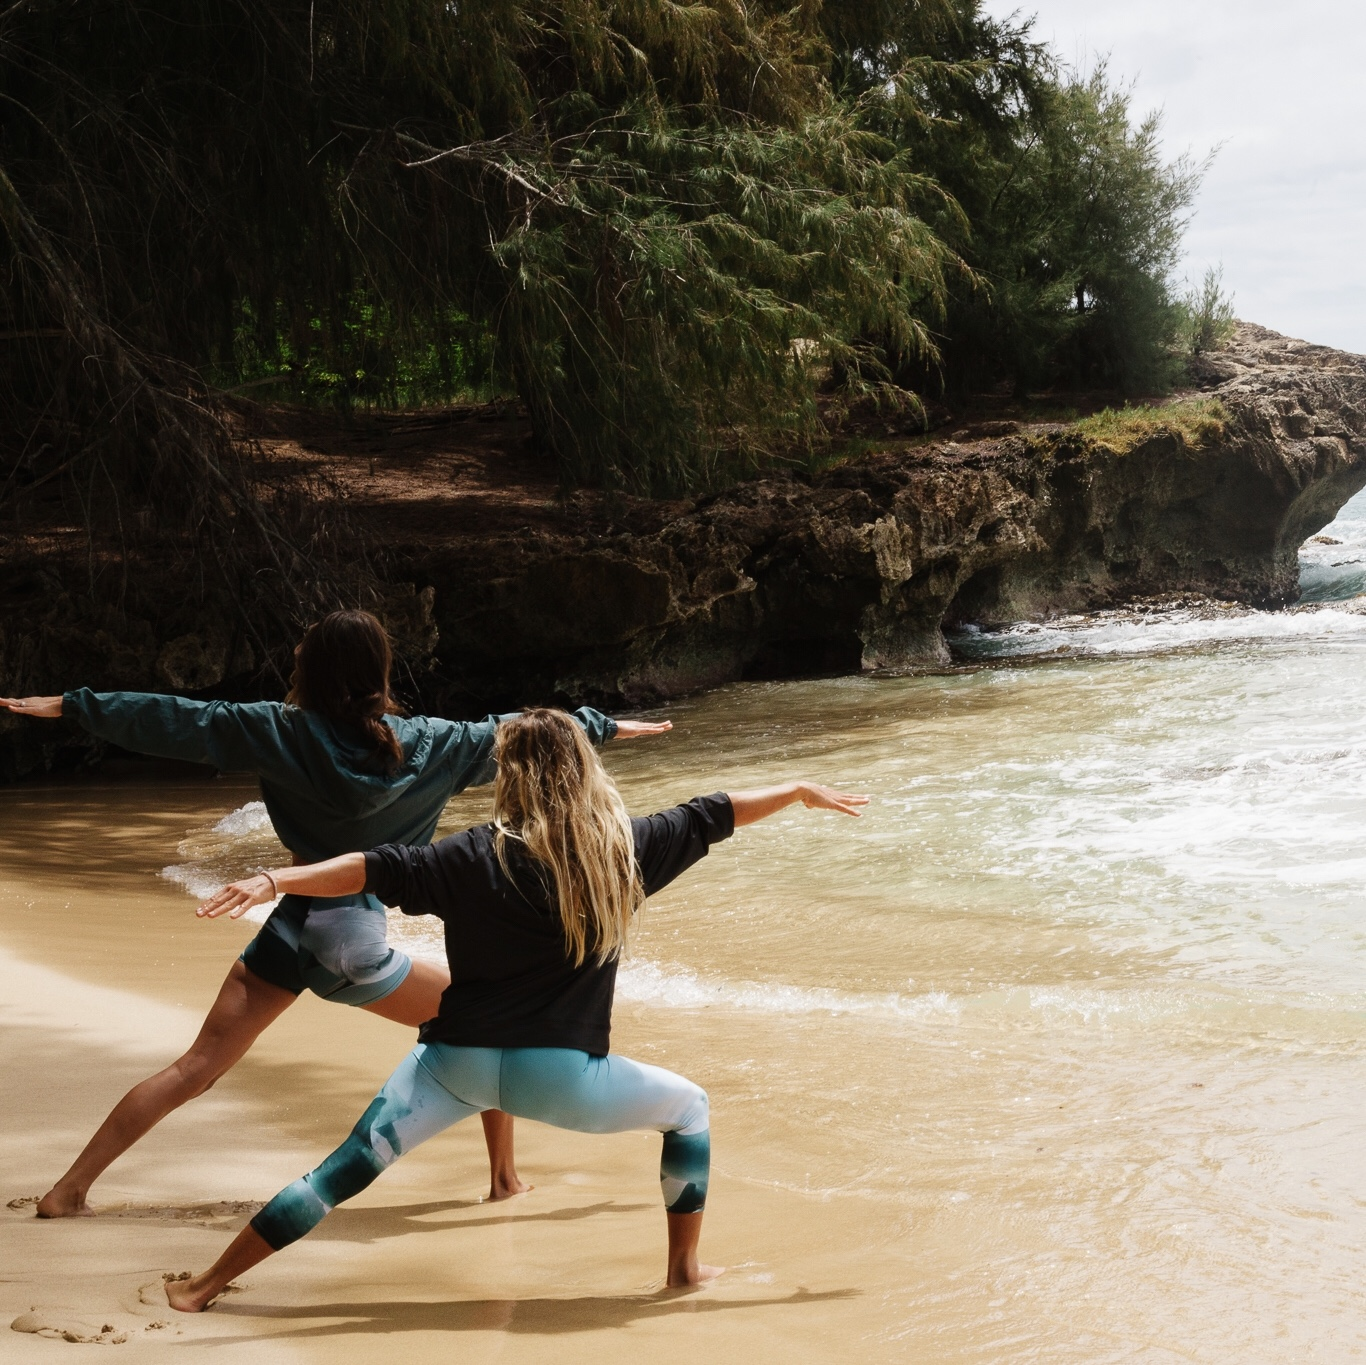 Additional Offerings - - Excursions for experiencing beautiful Kauai including waterfall hikes and beach days- Lomi Lomi deep healing massage- Private yoga instruction from Courteney- Personal oracle reading WITH JILL